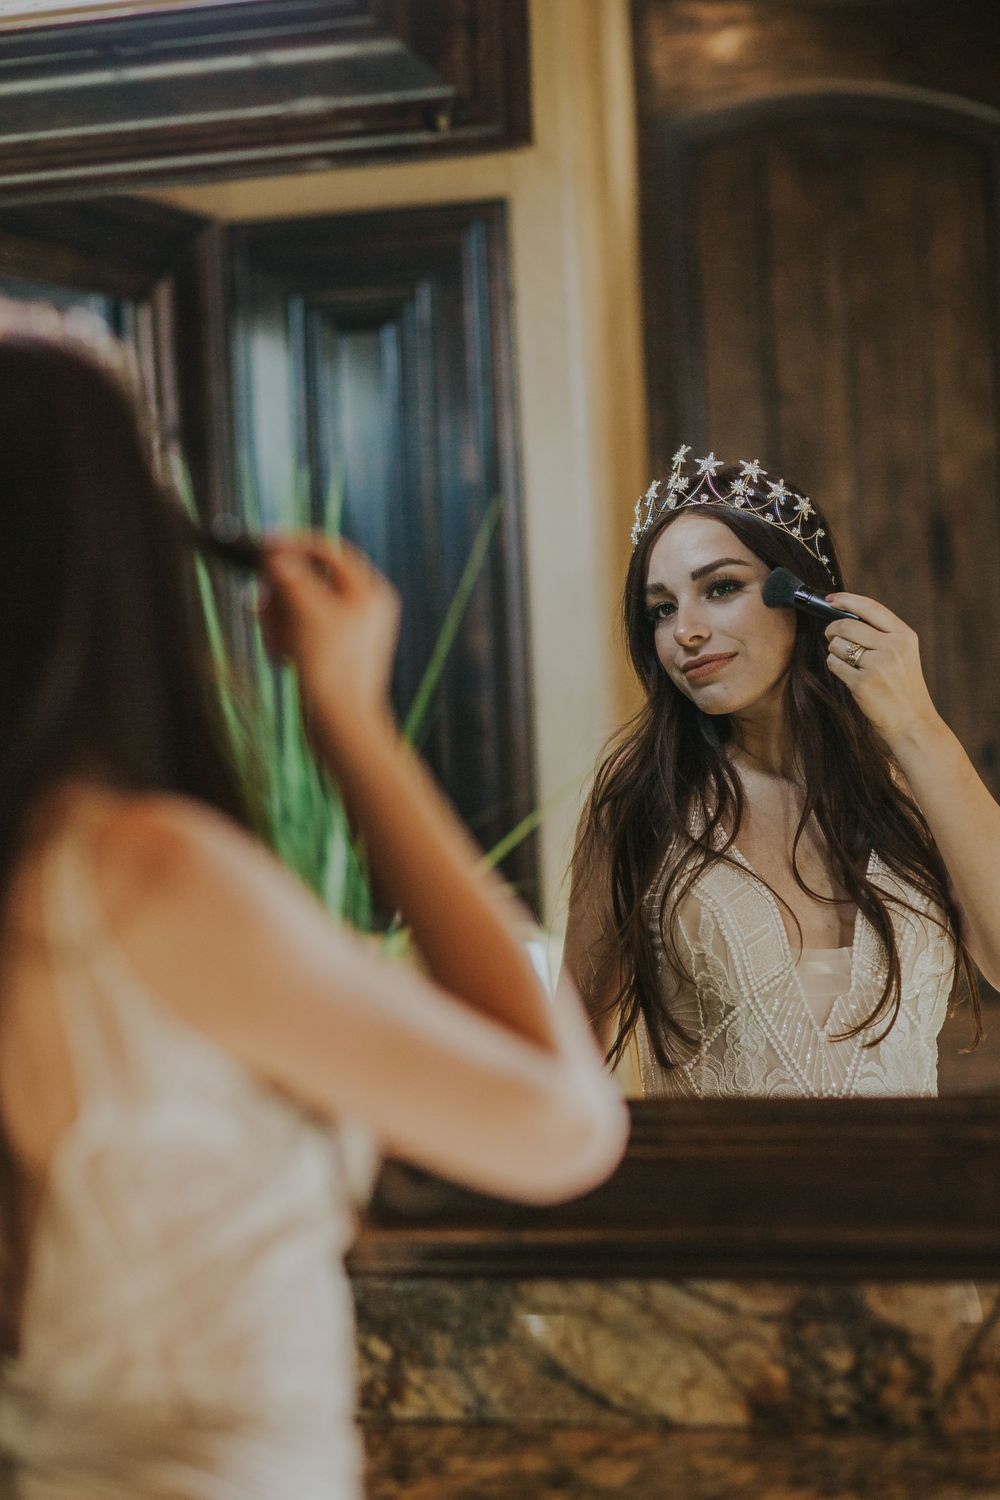 rebecca skidgel photography mesa arizona wedding bride getting ready in mirror putting on makeup